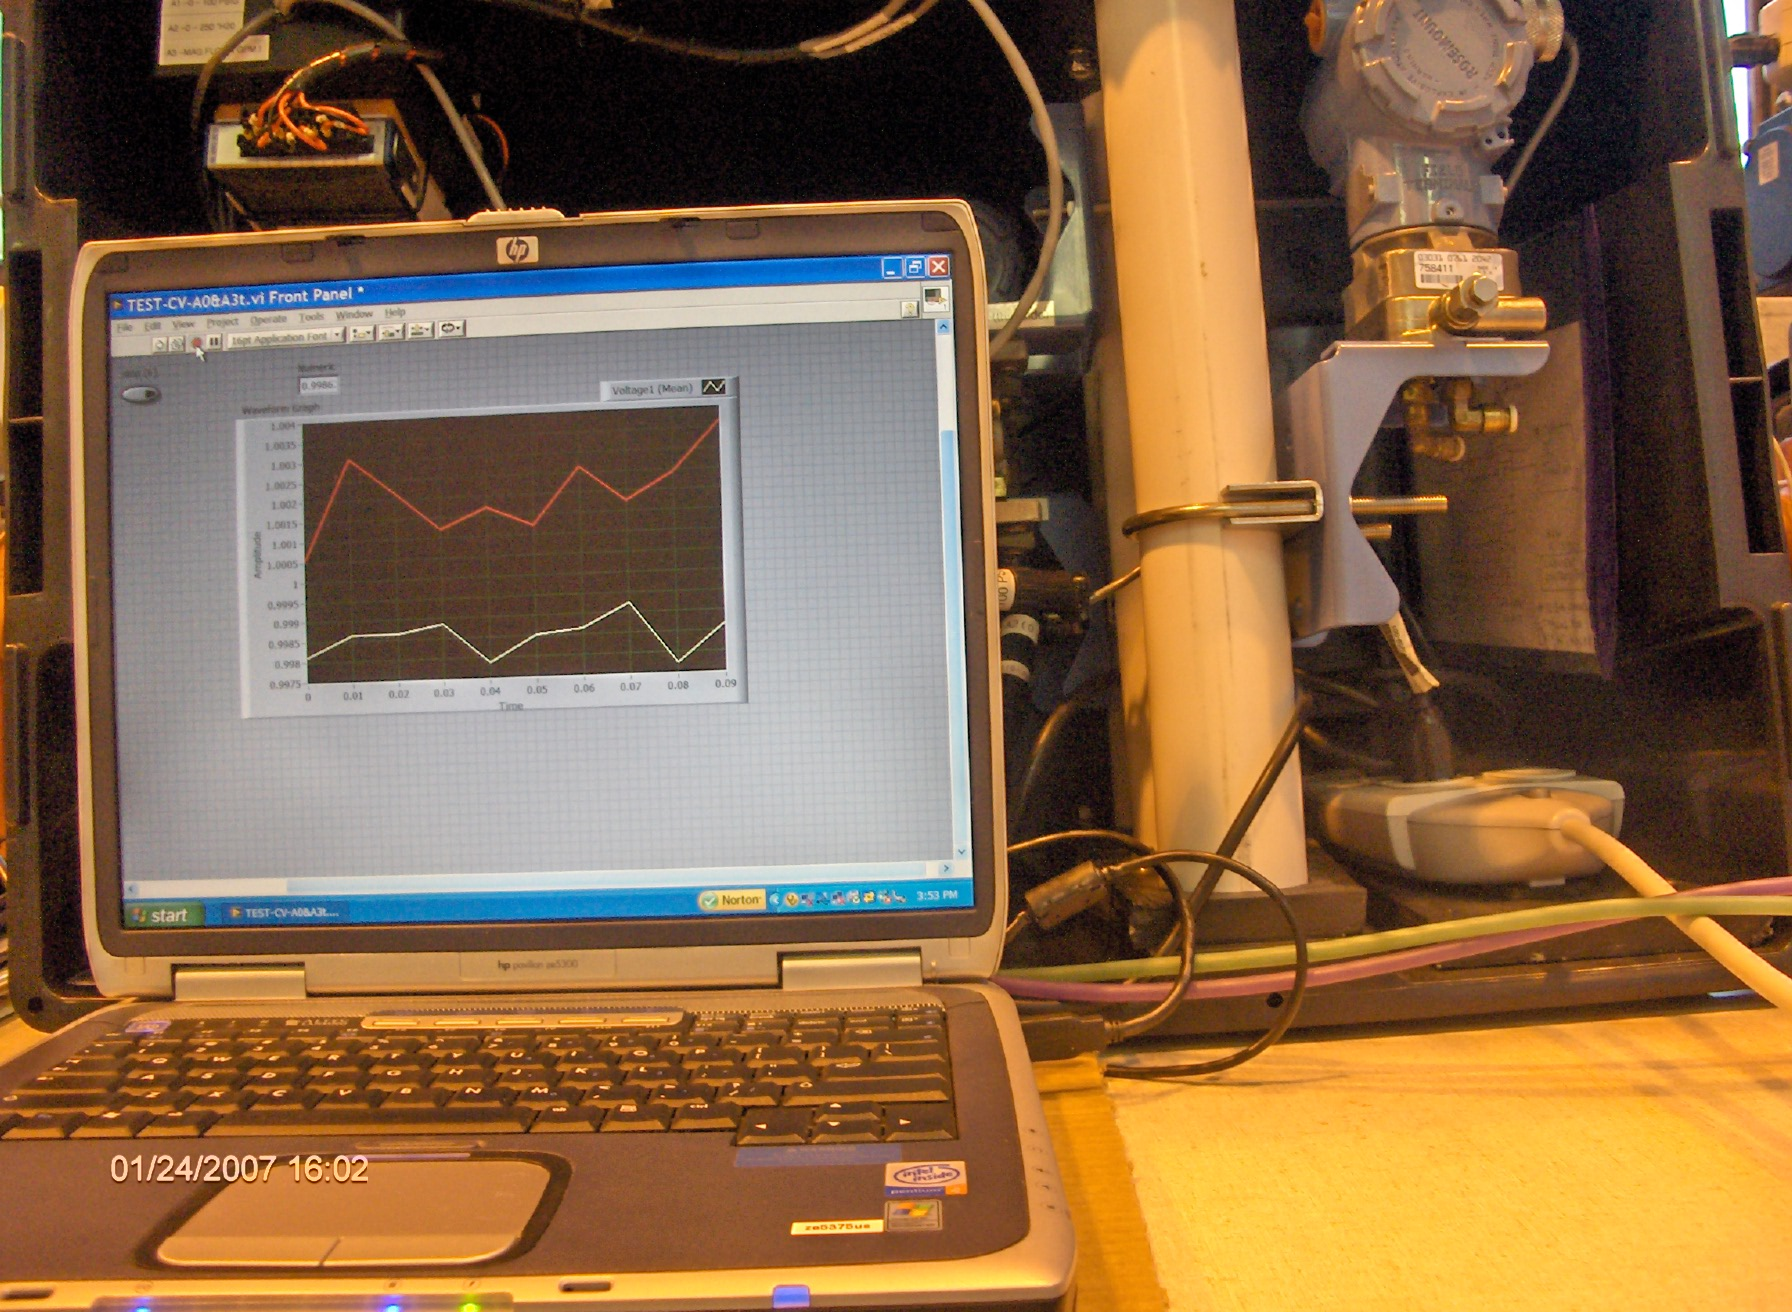 case study of babcook and wilcox Advanced babcock and wilcox boiler takes the heat  babcock & wilcox  engineers also employed computational fluid dynamics modeling to place  burners and overfire air ports  environmental impact of an industrial kitchen: a  case study.